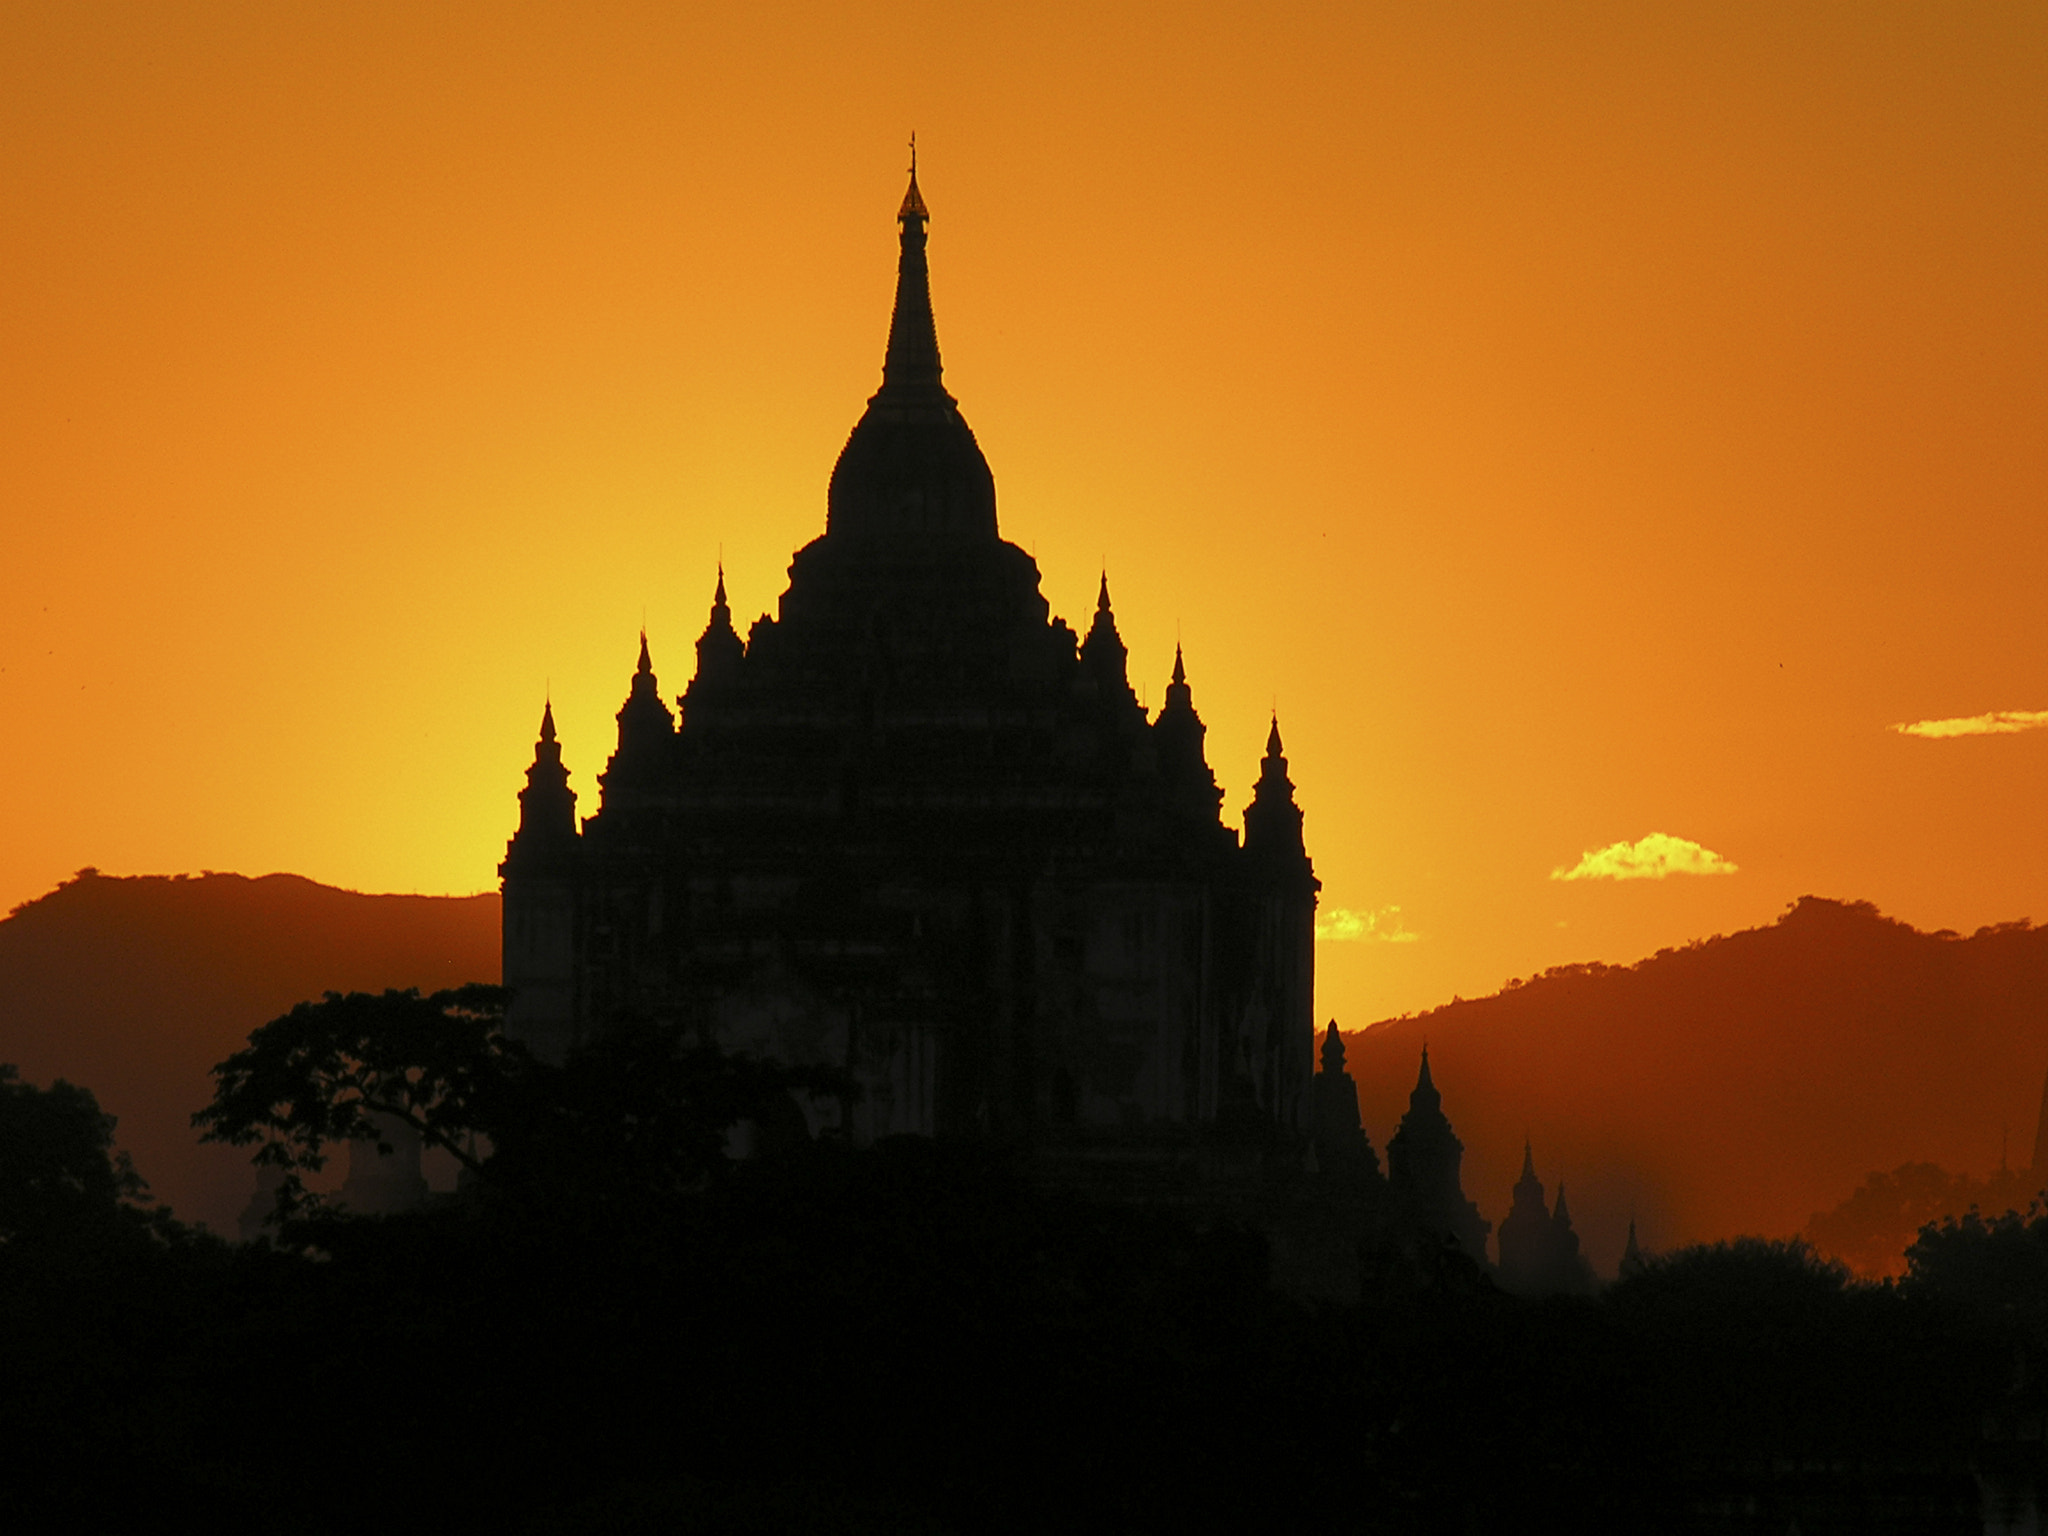 Photograph Sunset at Bagan by Mik Peach on 500px